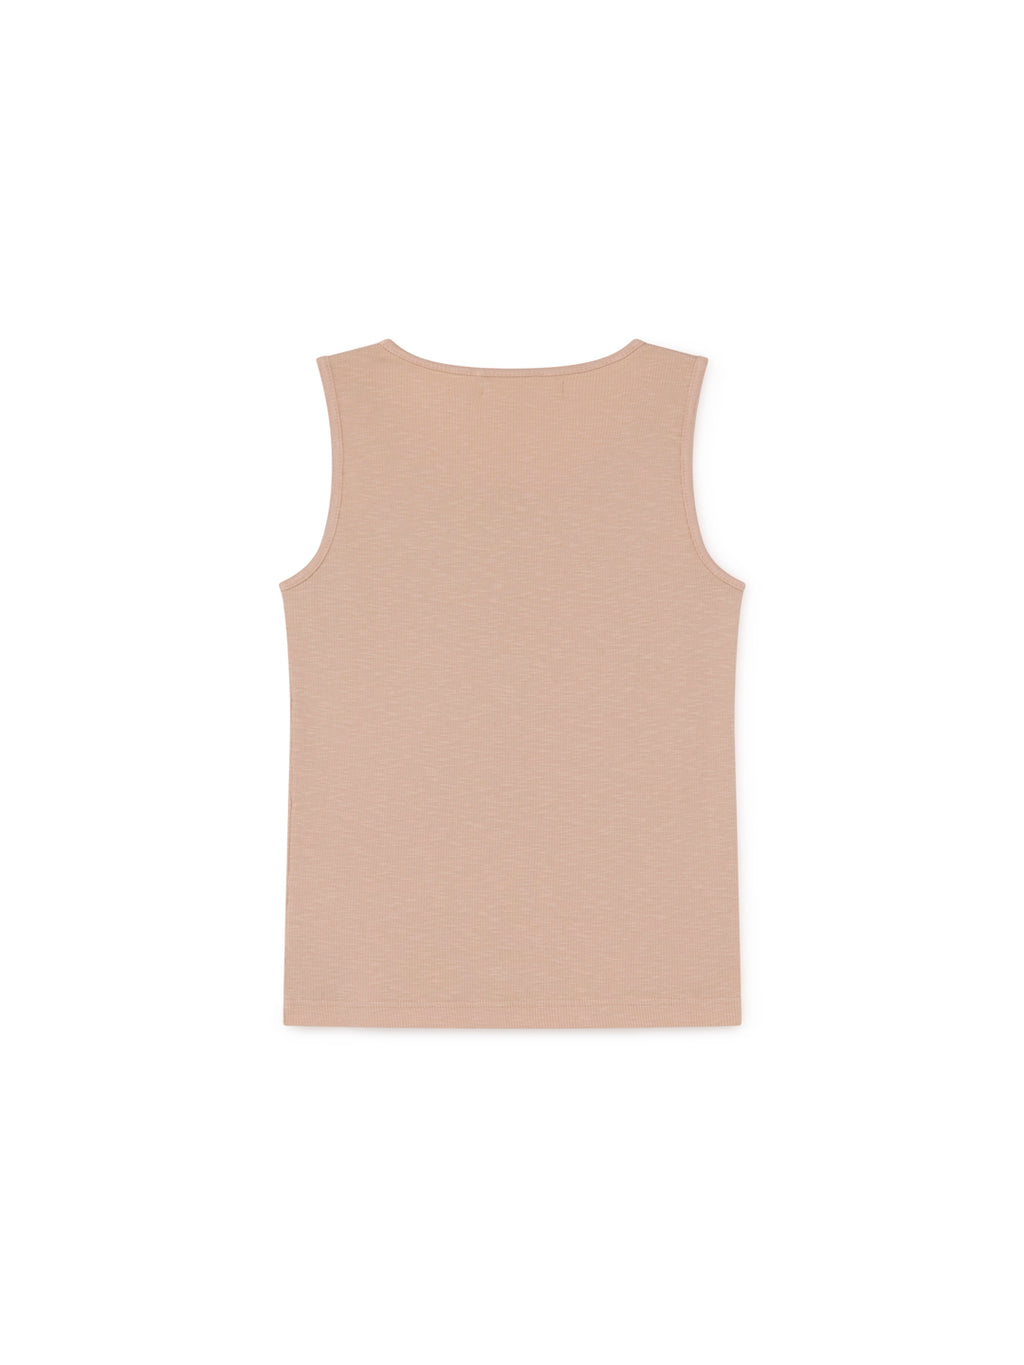 TWOTHIRDS Singlet: Rojas - Pale Pink